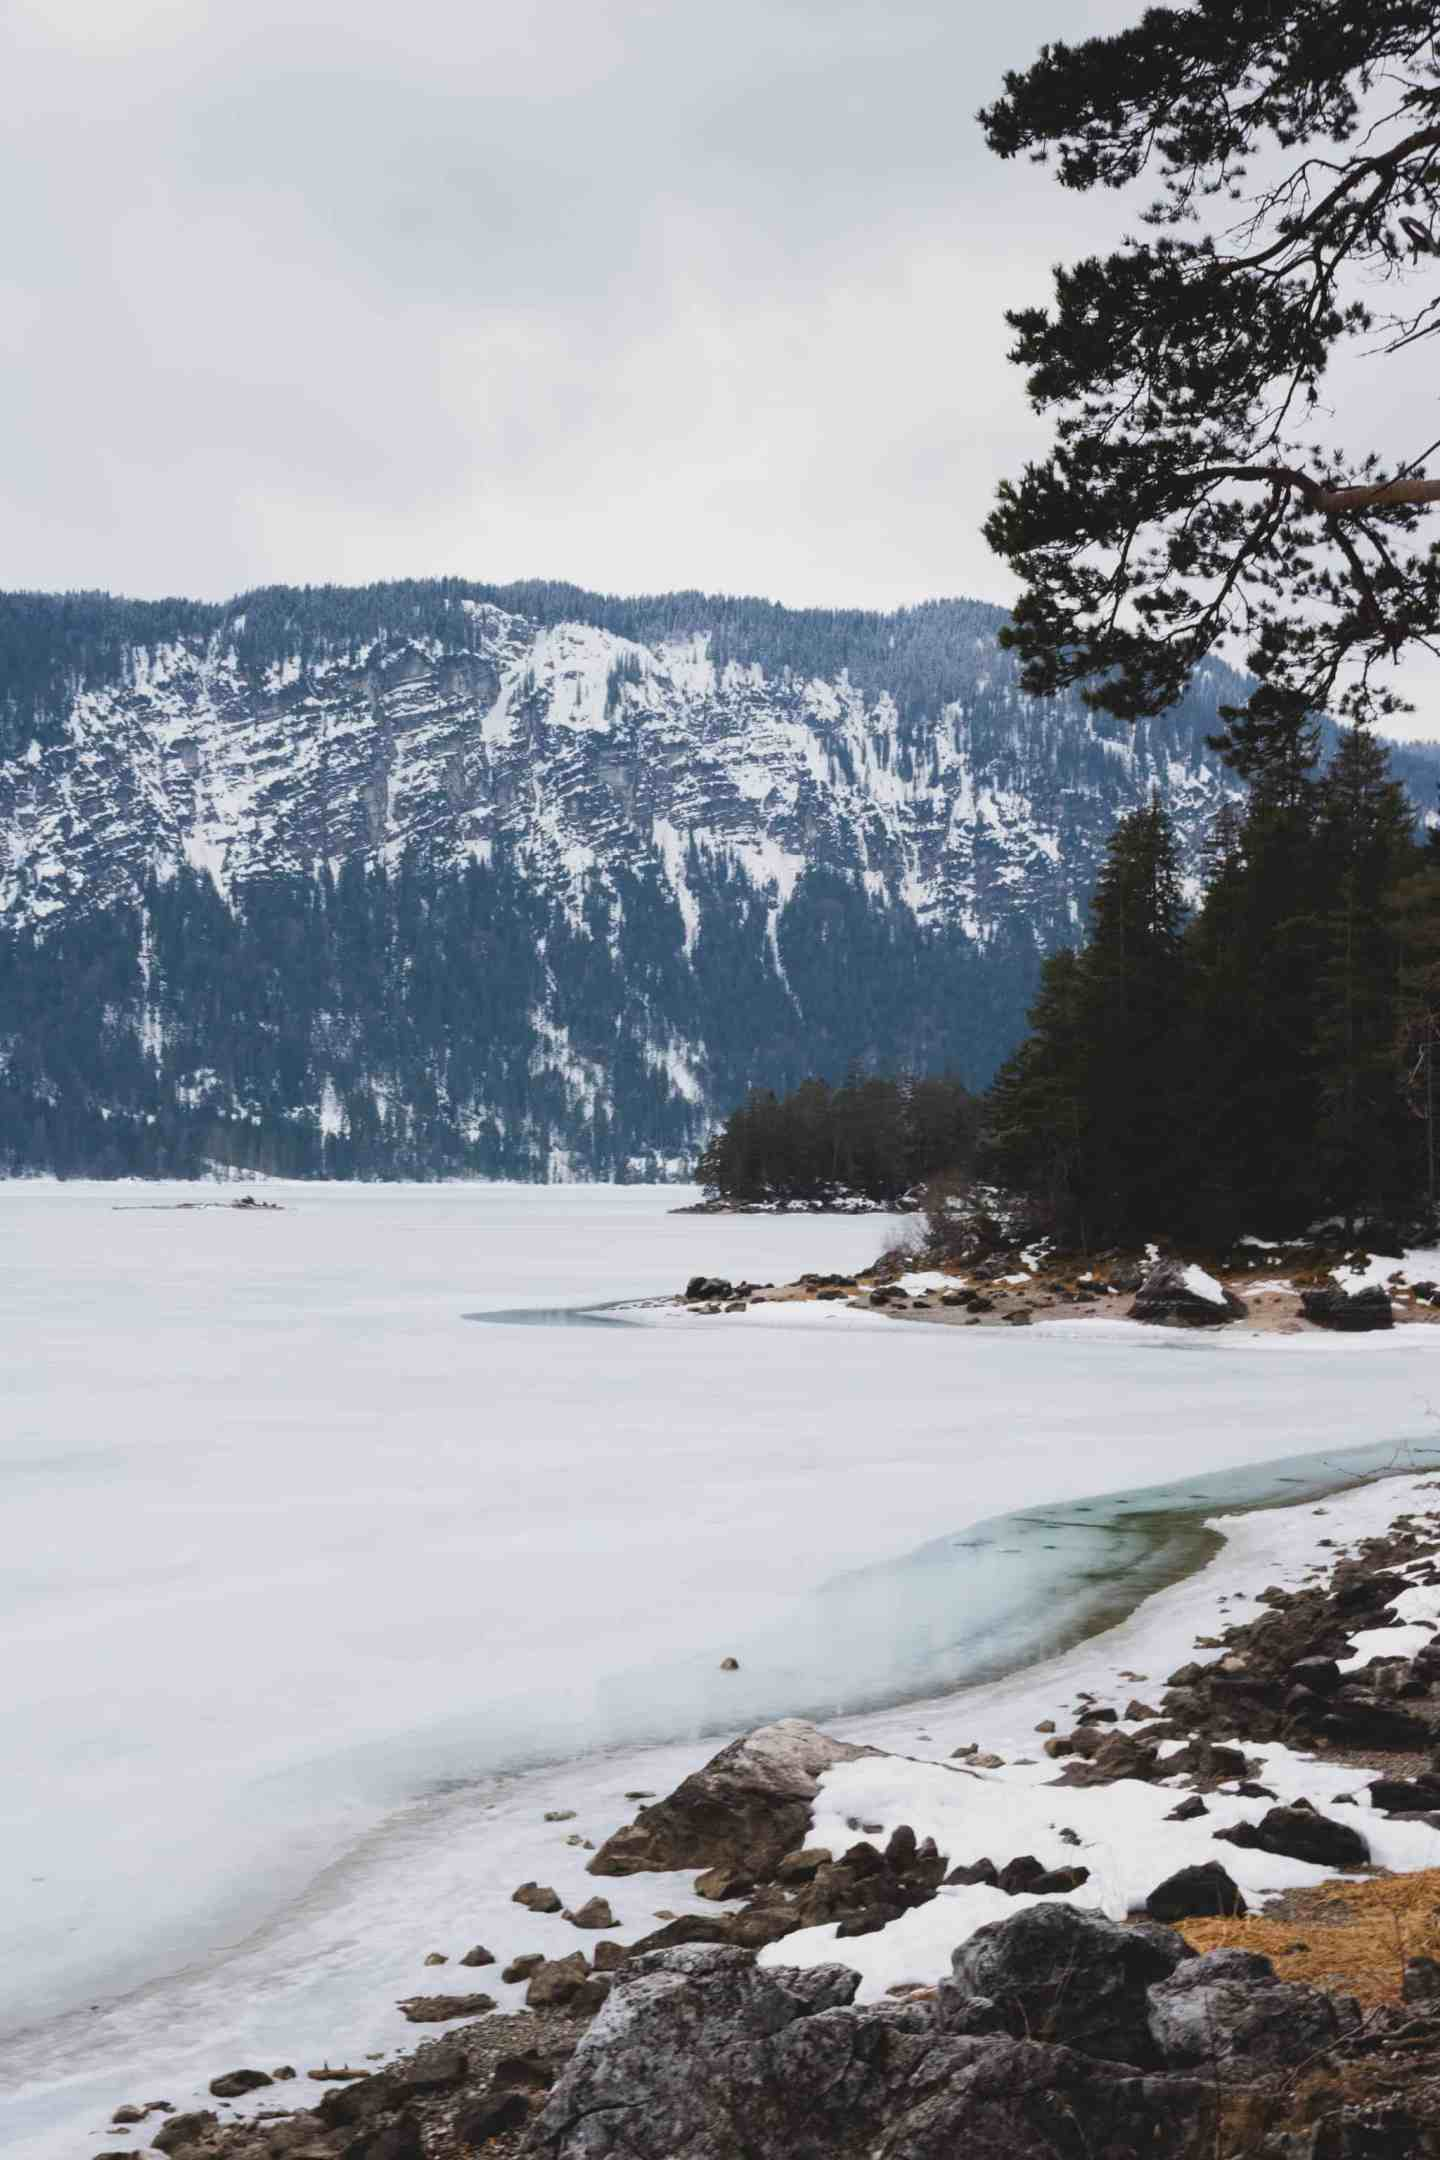 Frozen lake, a snowy mountain and pine trees